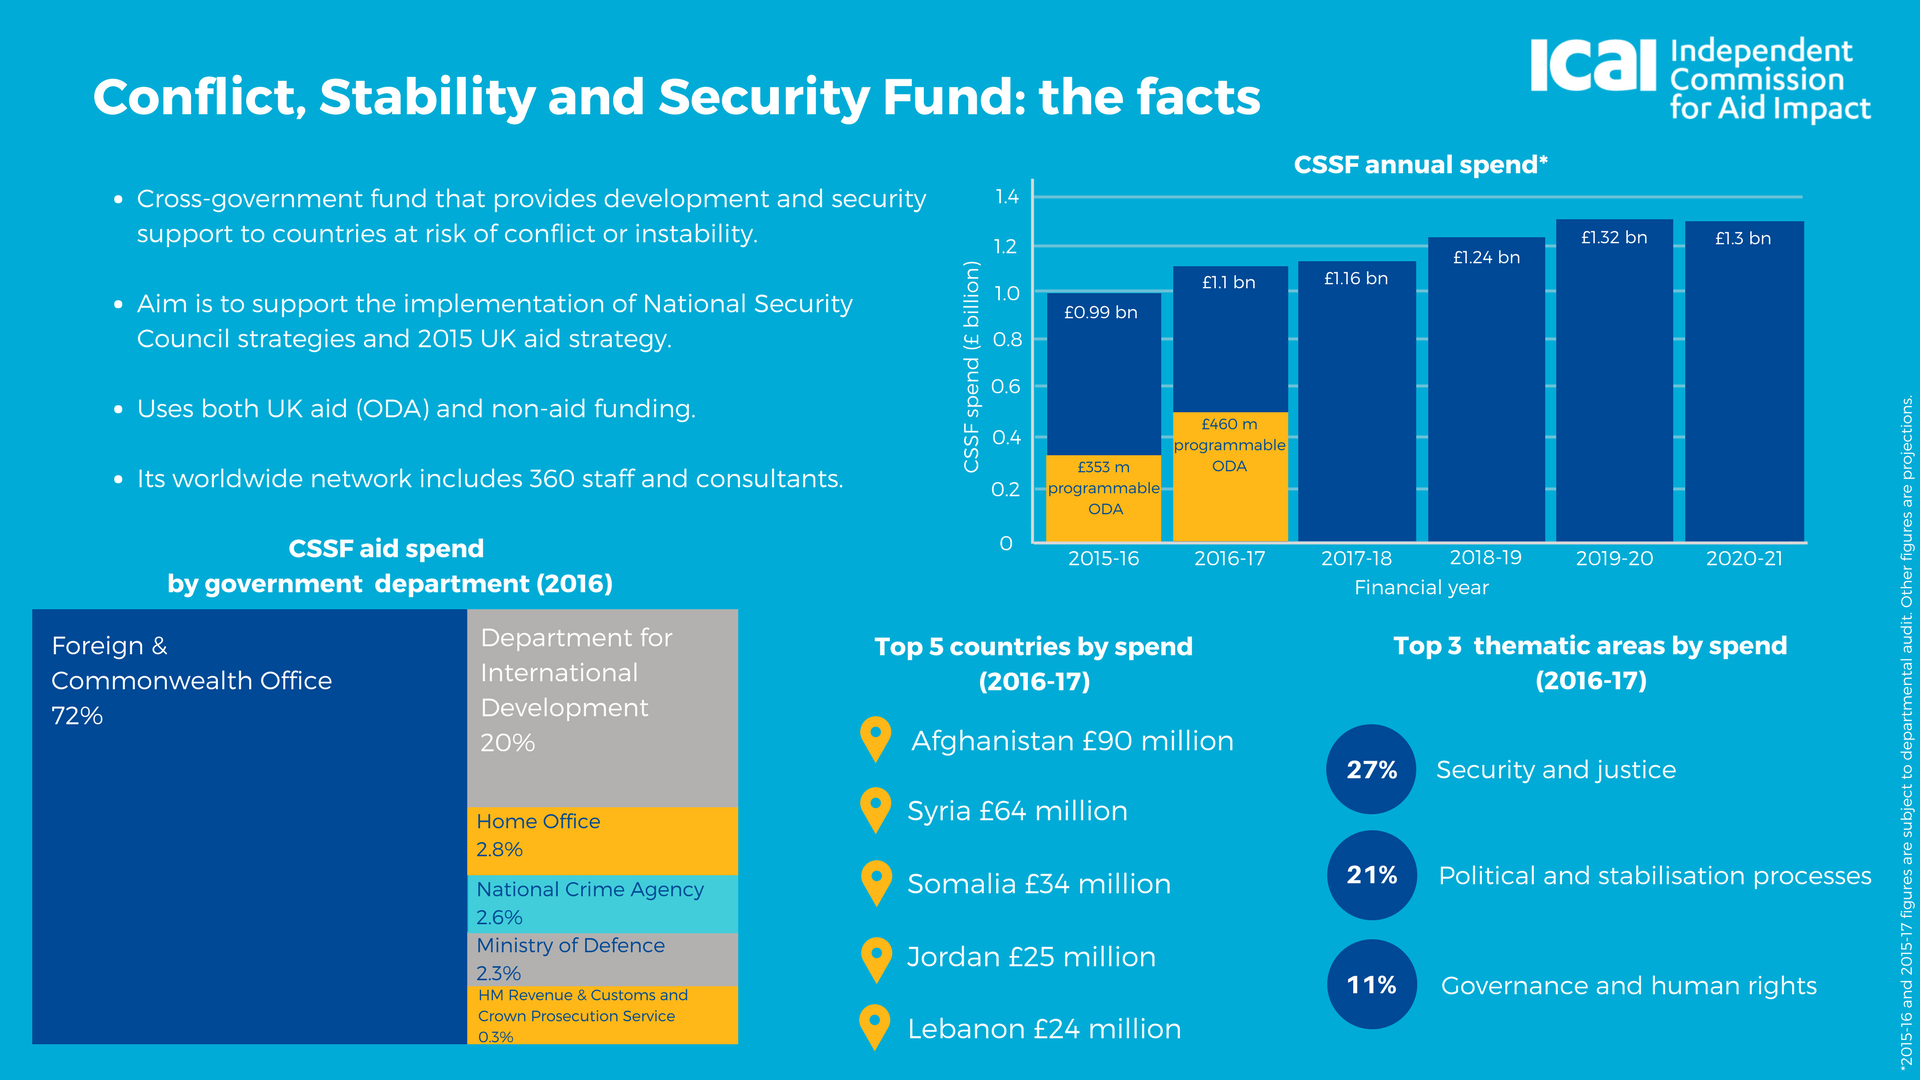 Infographic containing key facts and figures about the Conflict, Stability and Security Fund drawn from the ICAI report